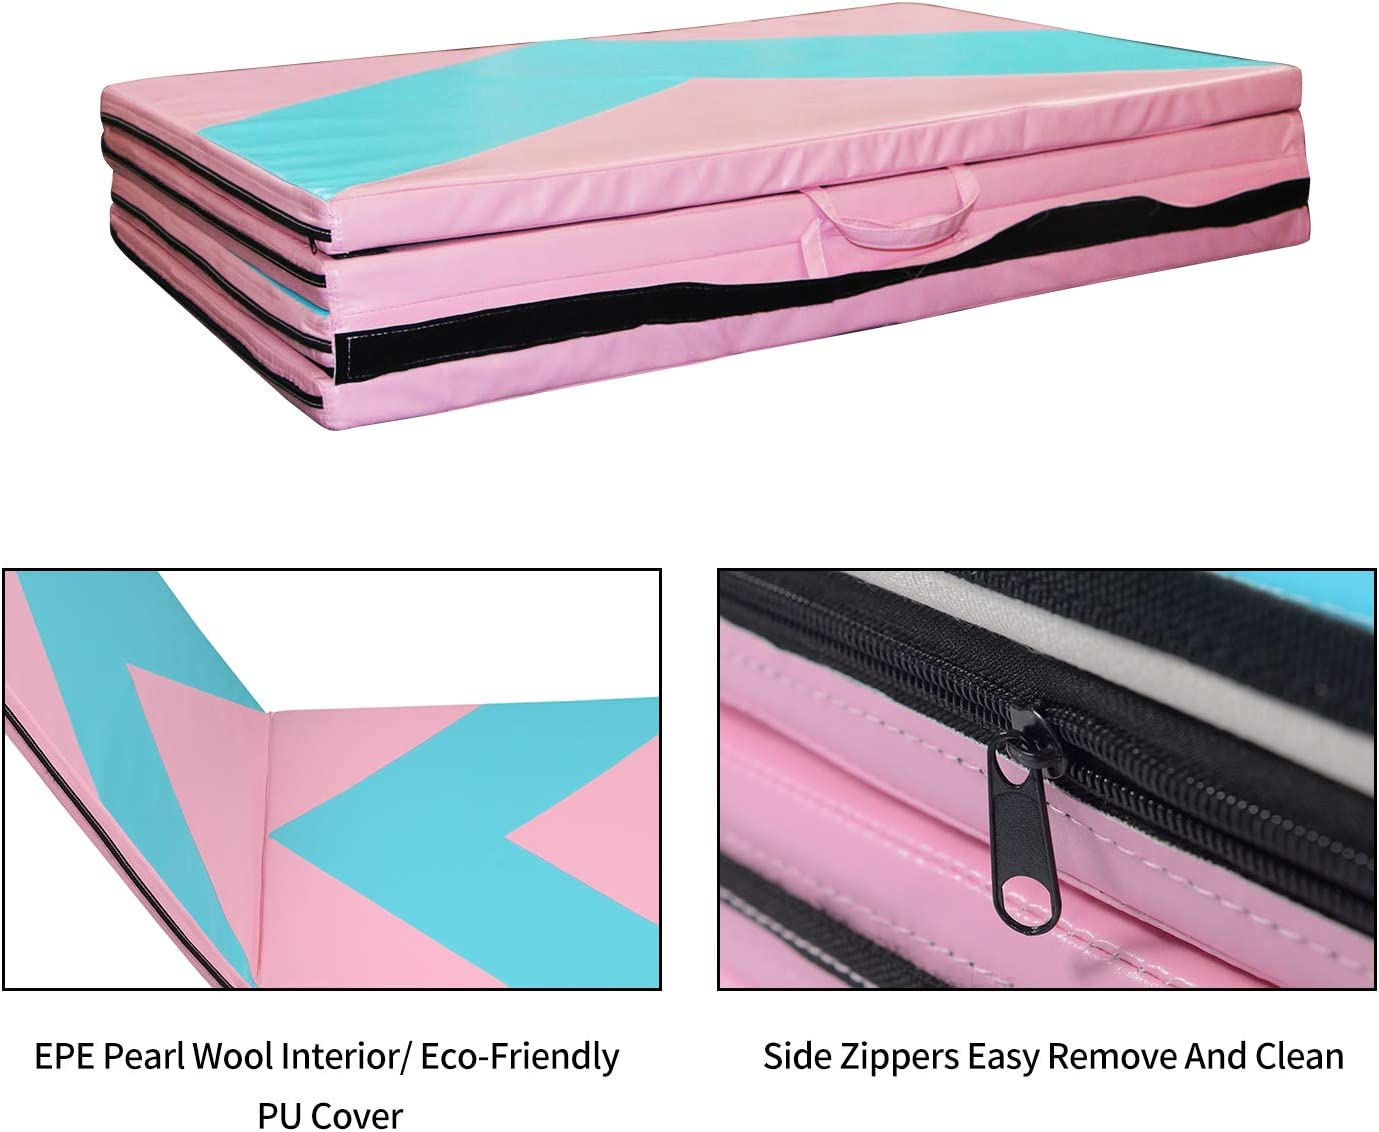 Big Folding Exercise Wrestling Mats for Kids with Carrying Handles LEISURELIFE Gymnastics Tumbling Mat 4x10x2 for Home